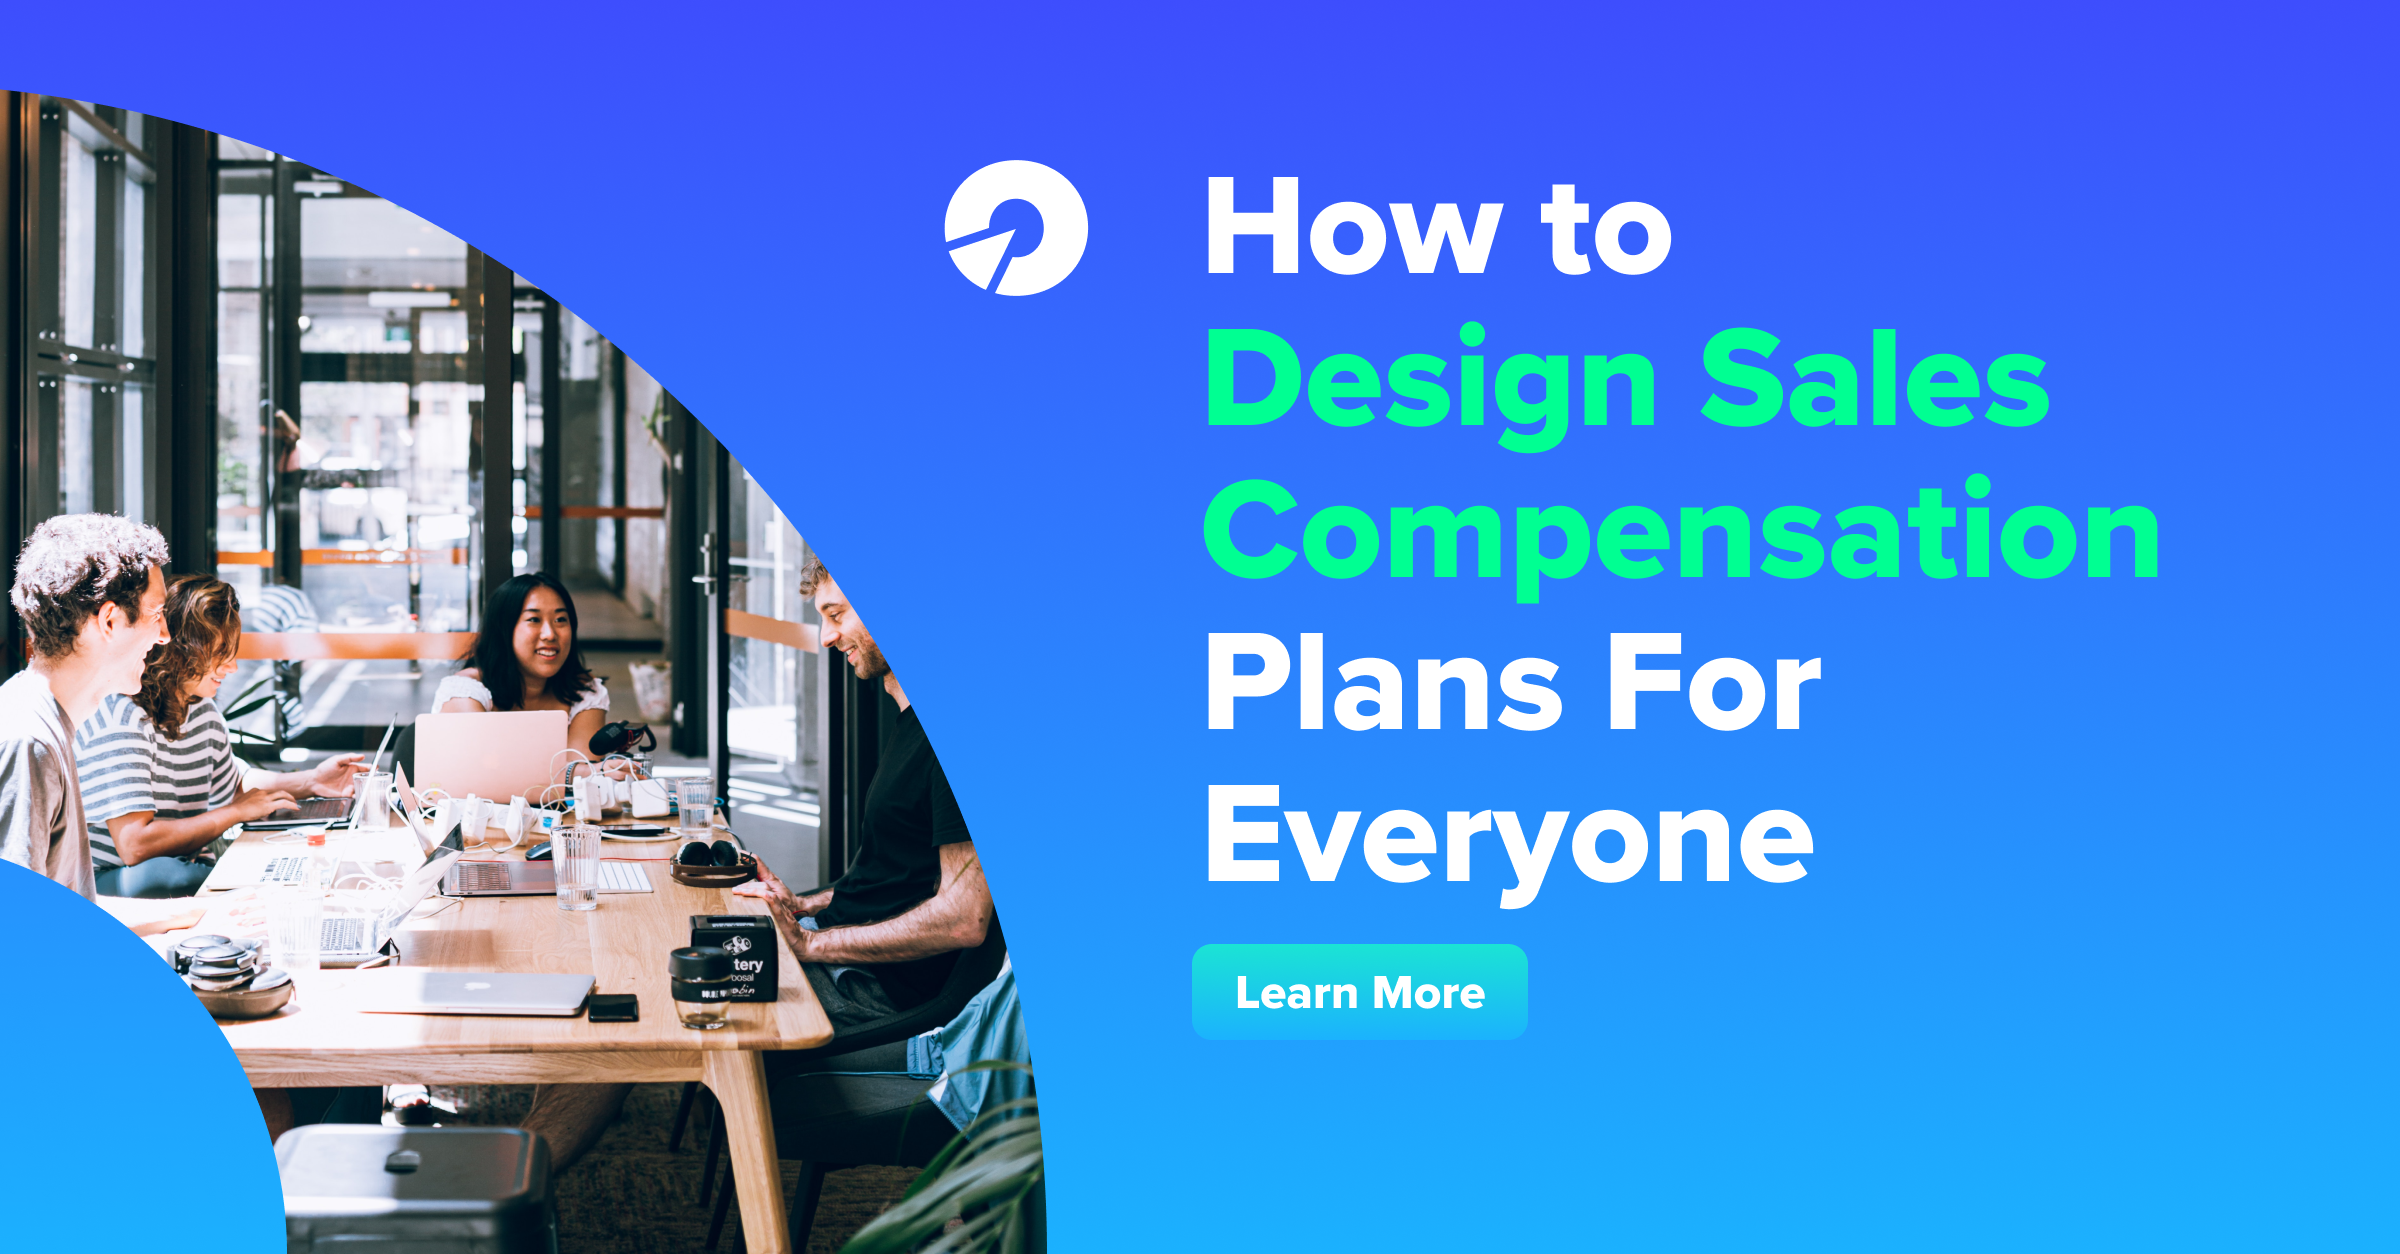 How to Design Sales Compensation Plans For Everyone